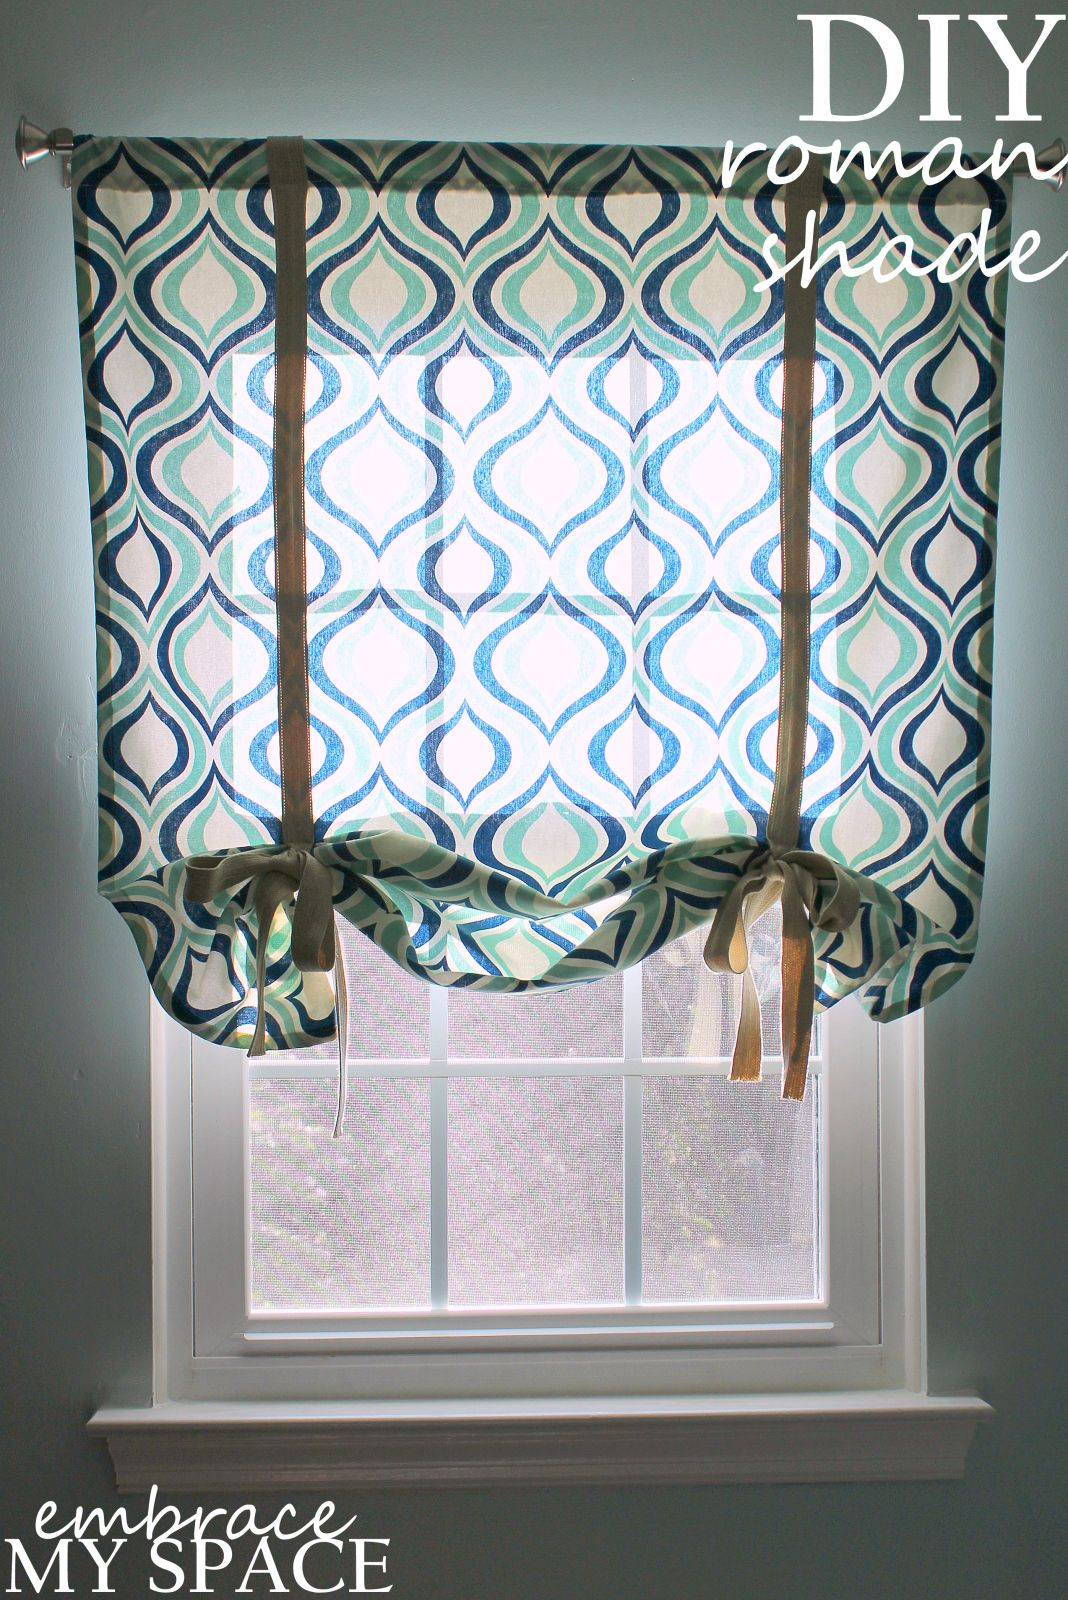 Why buy when you can diy a simple roman shade diy u useful stuff